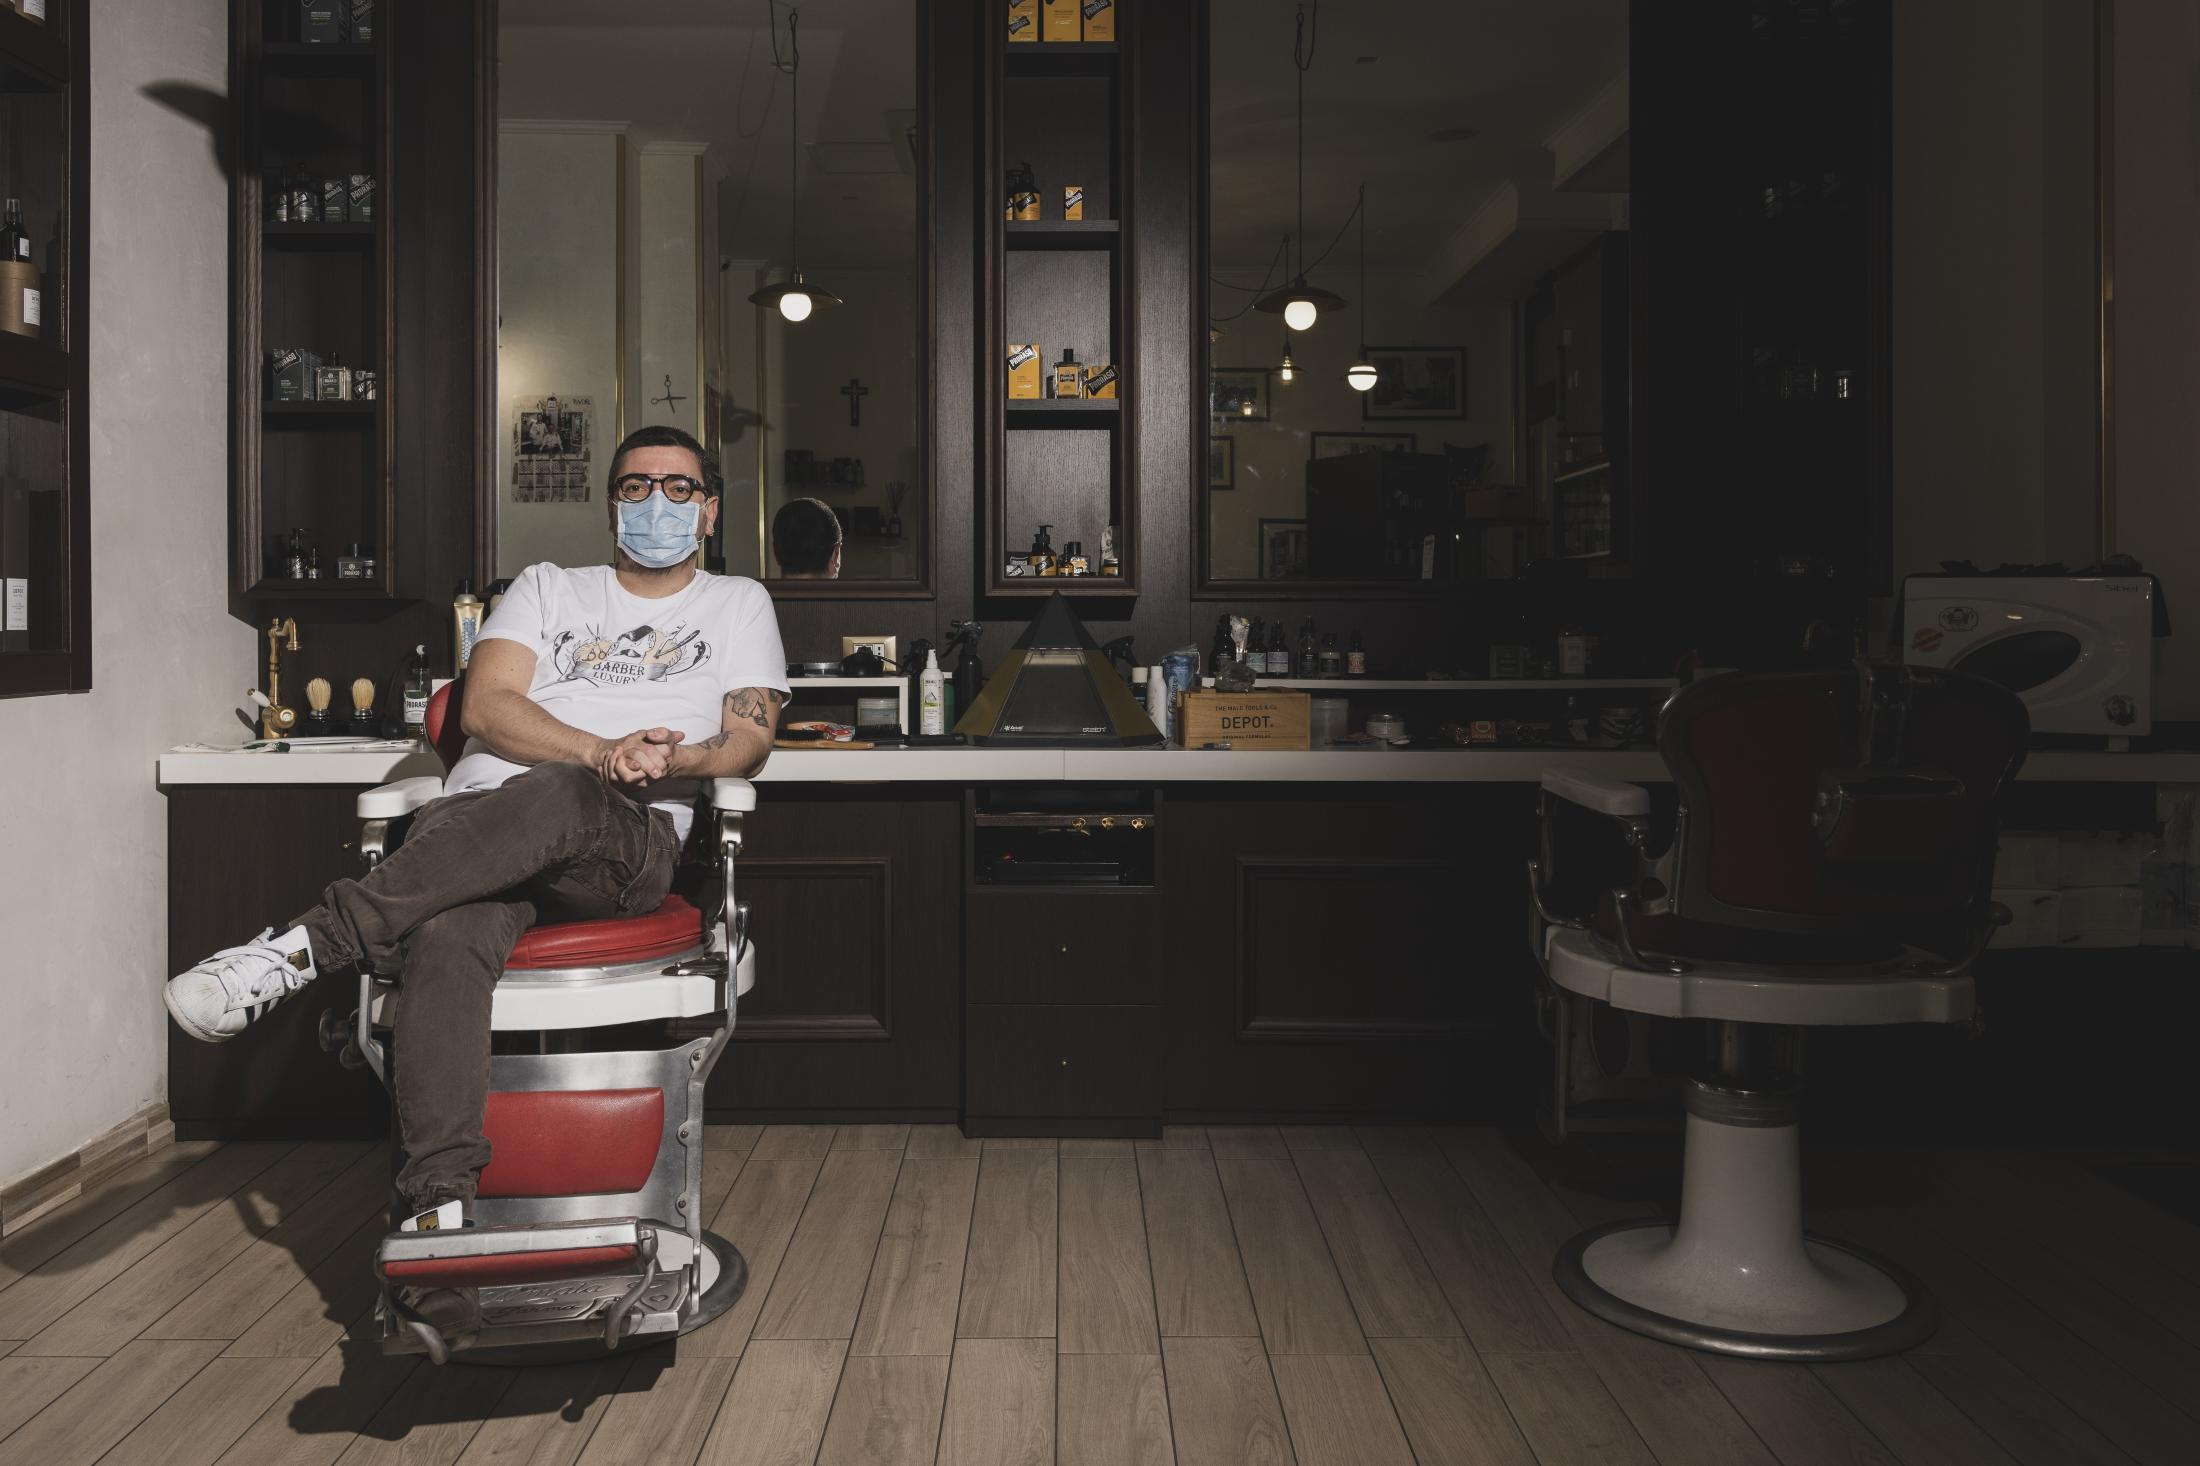 – Fabio Chiochia (32). Fabio has been a barber since he was 12 years old. At 24 he opened a small salon of his own, in which two receptionists and a colleague coiffeur work. Among them, there is also his partner, currently on maternity leave. The INPS (National Institute for Social Security) pays her the contributions, but paradoxically Chiochia cannot pay her the salary he owes her. To bear the additional costs of reopening safely, he made a 30% charge on rates to customers, whose daily number is halved.